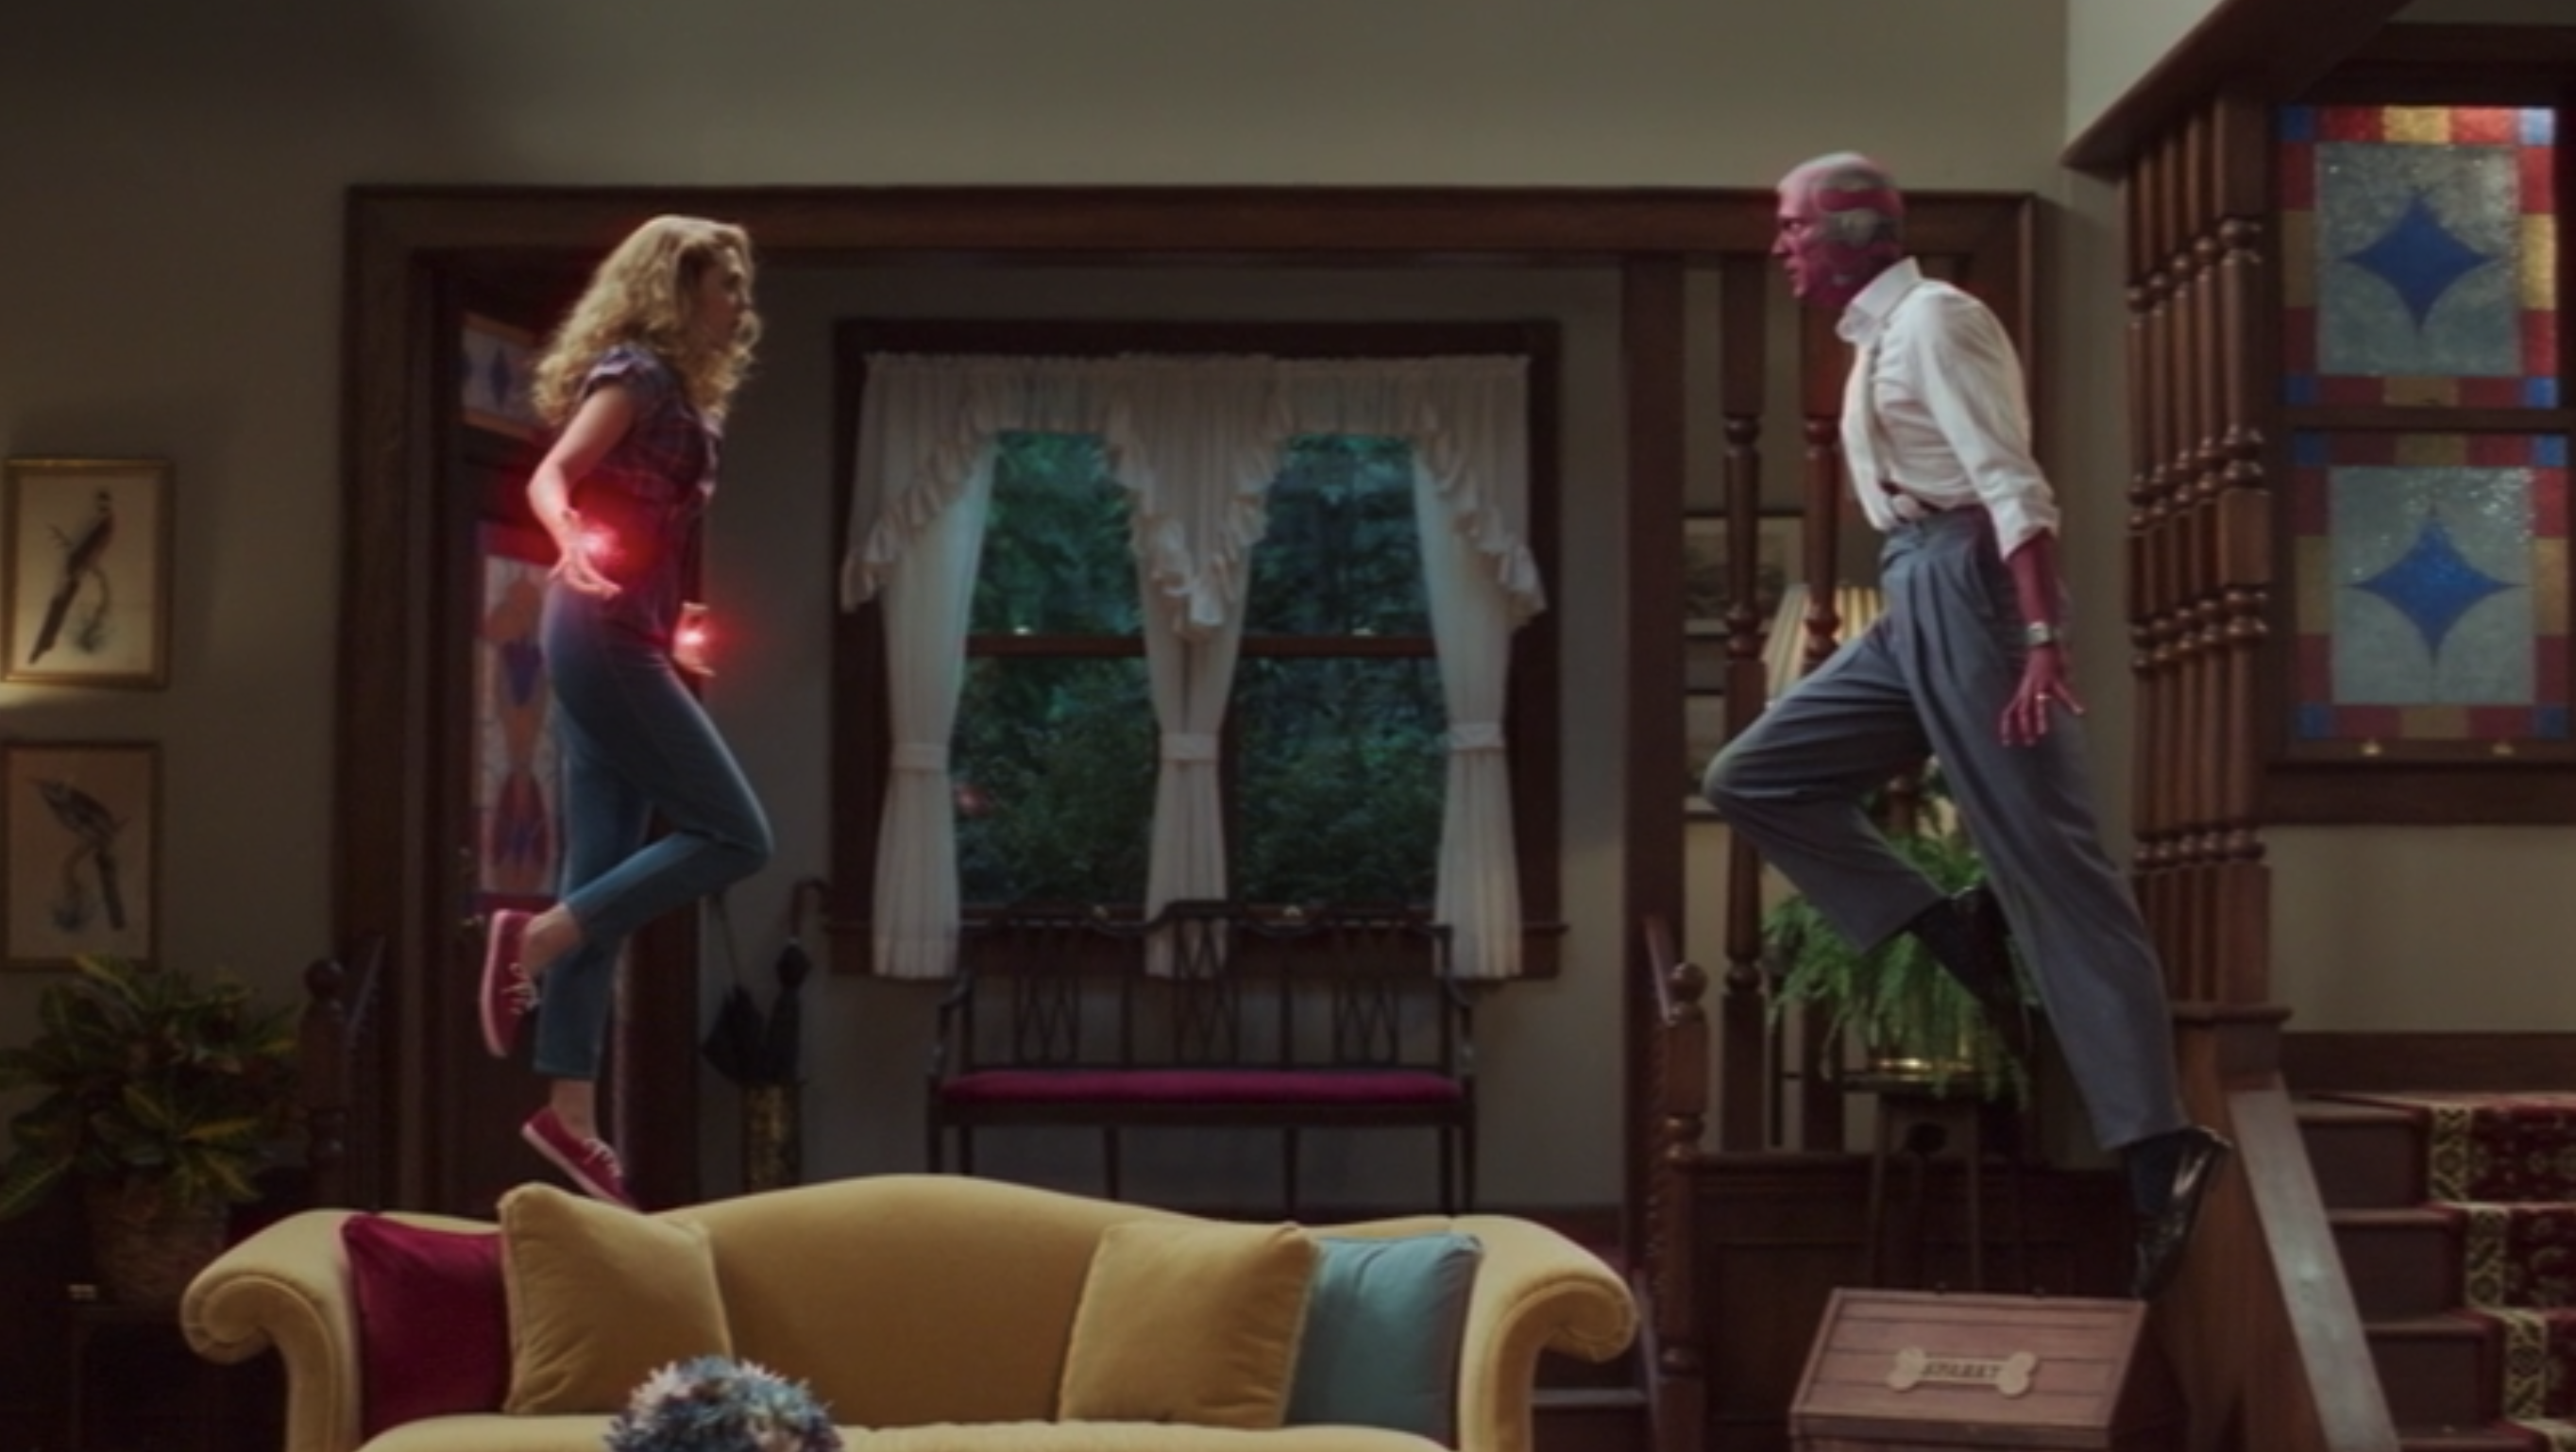 """Wanda and Vision flying in their living room in """"WandaVision"""""""